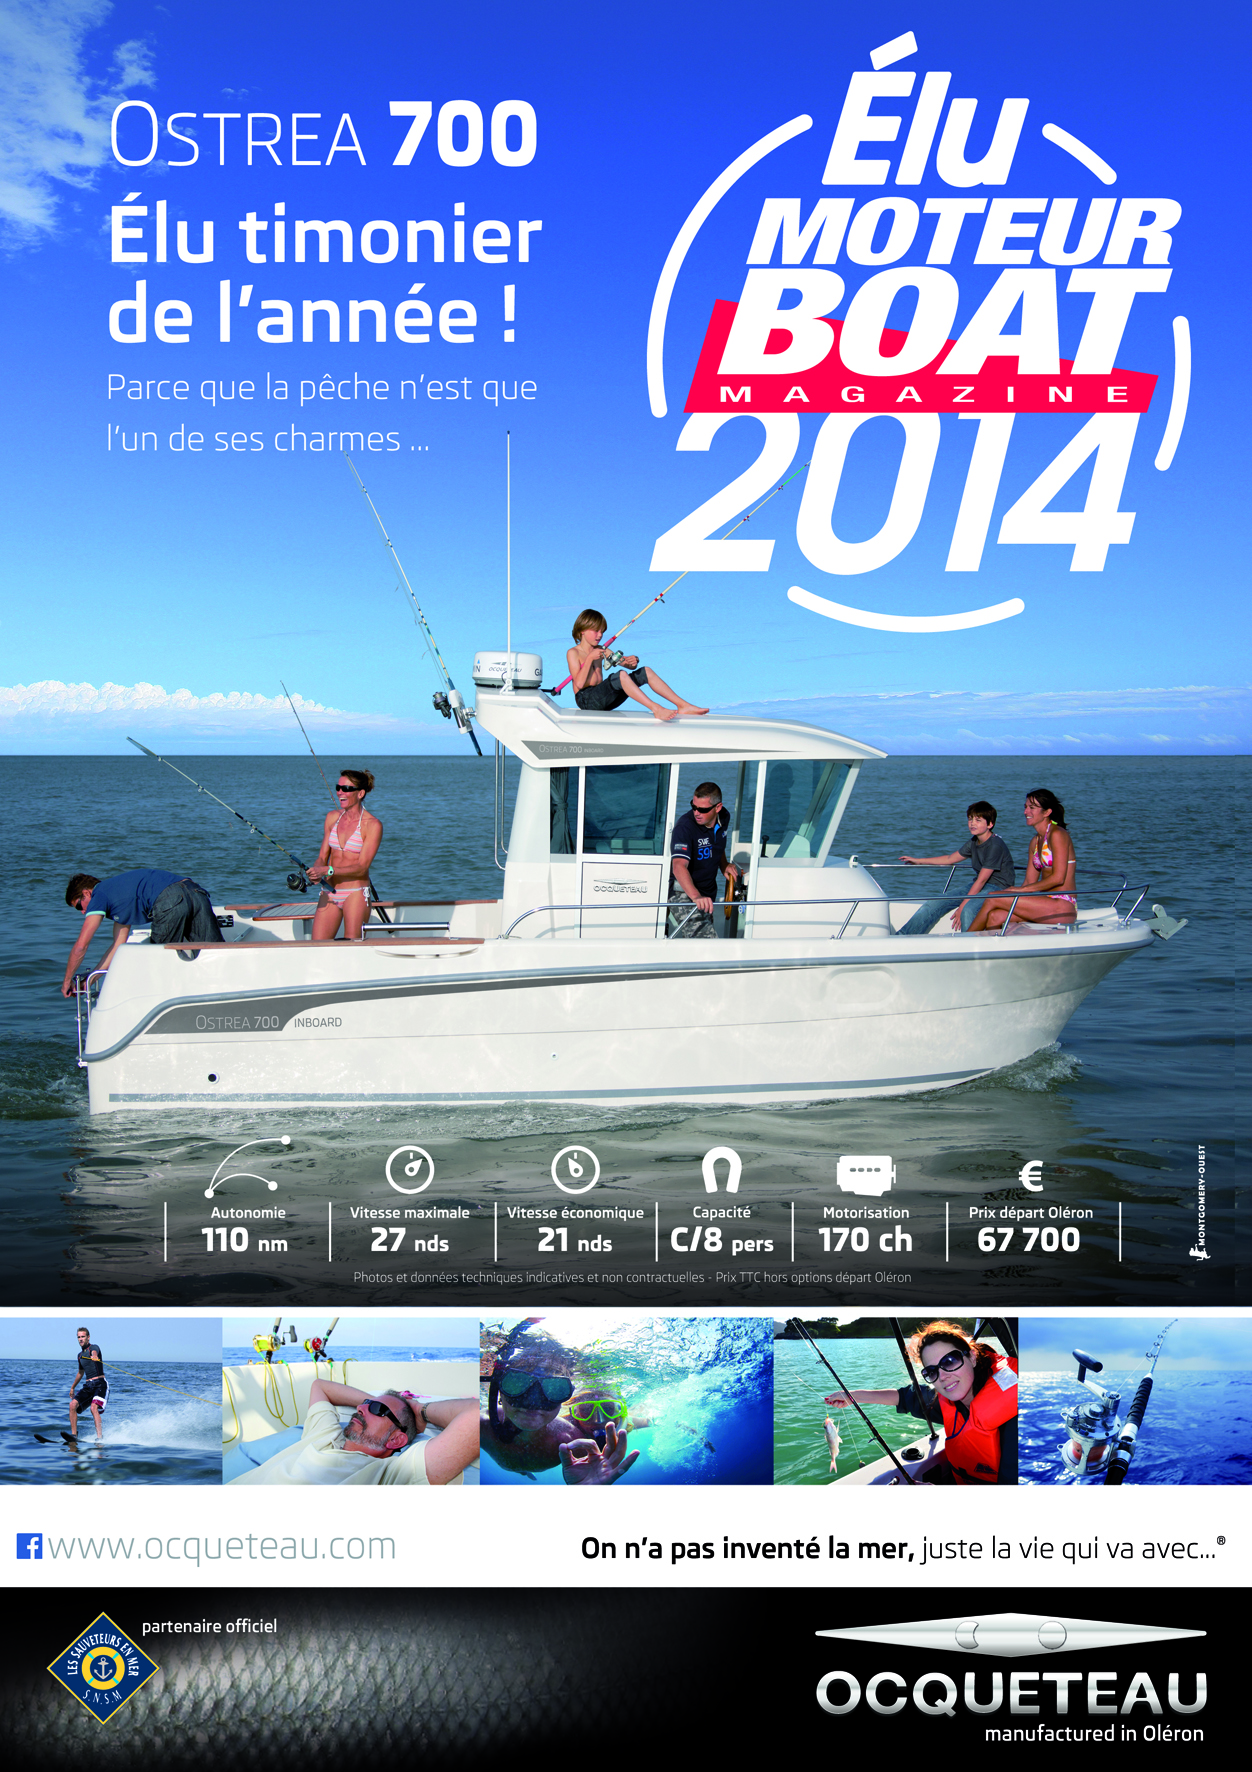 OSTREA 700 awarded boat of the year by Moteur Boat